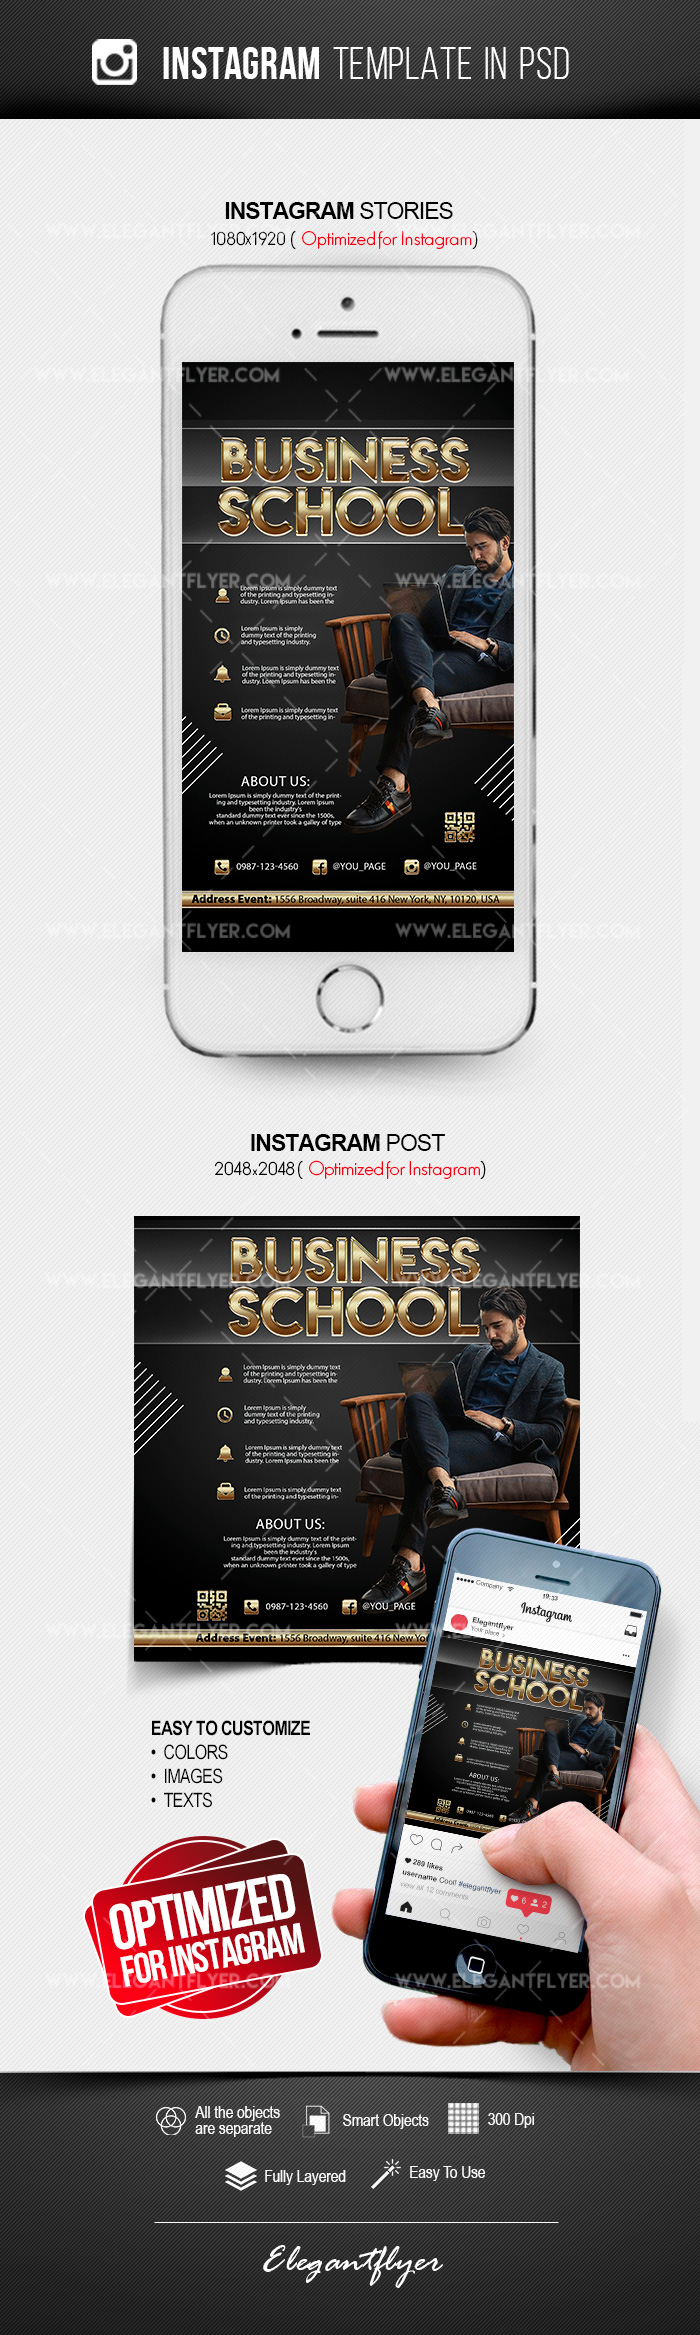 Business School – Free Instagram Stories Template in PSD + Post Templates